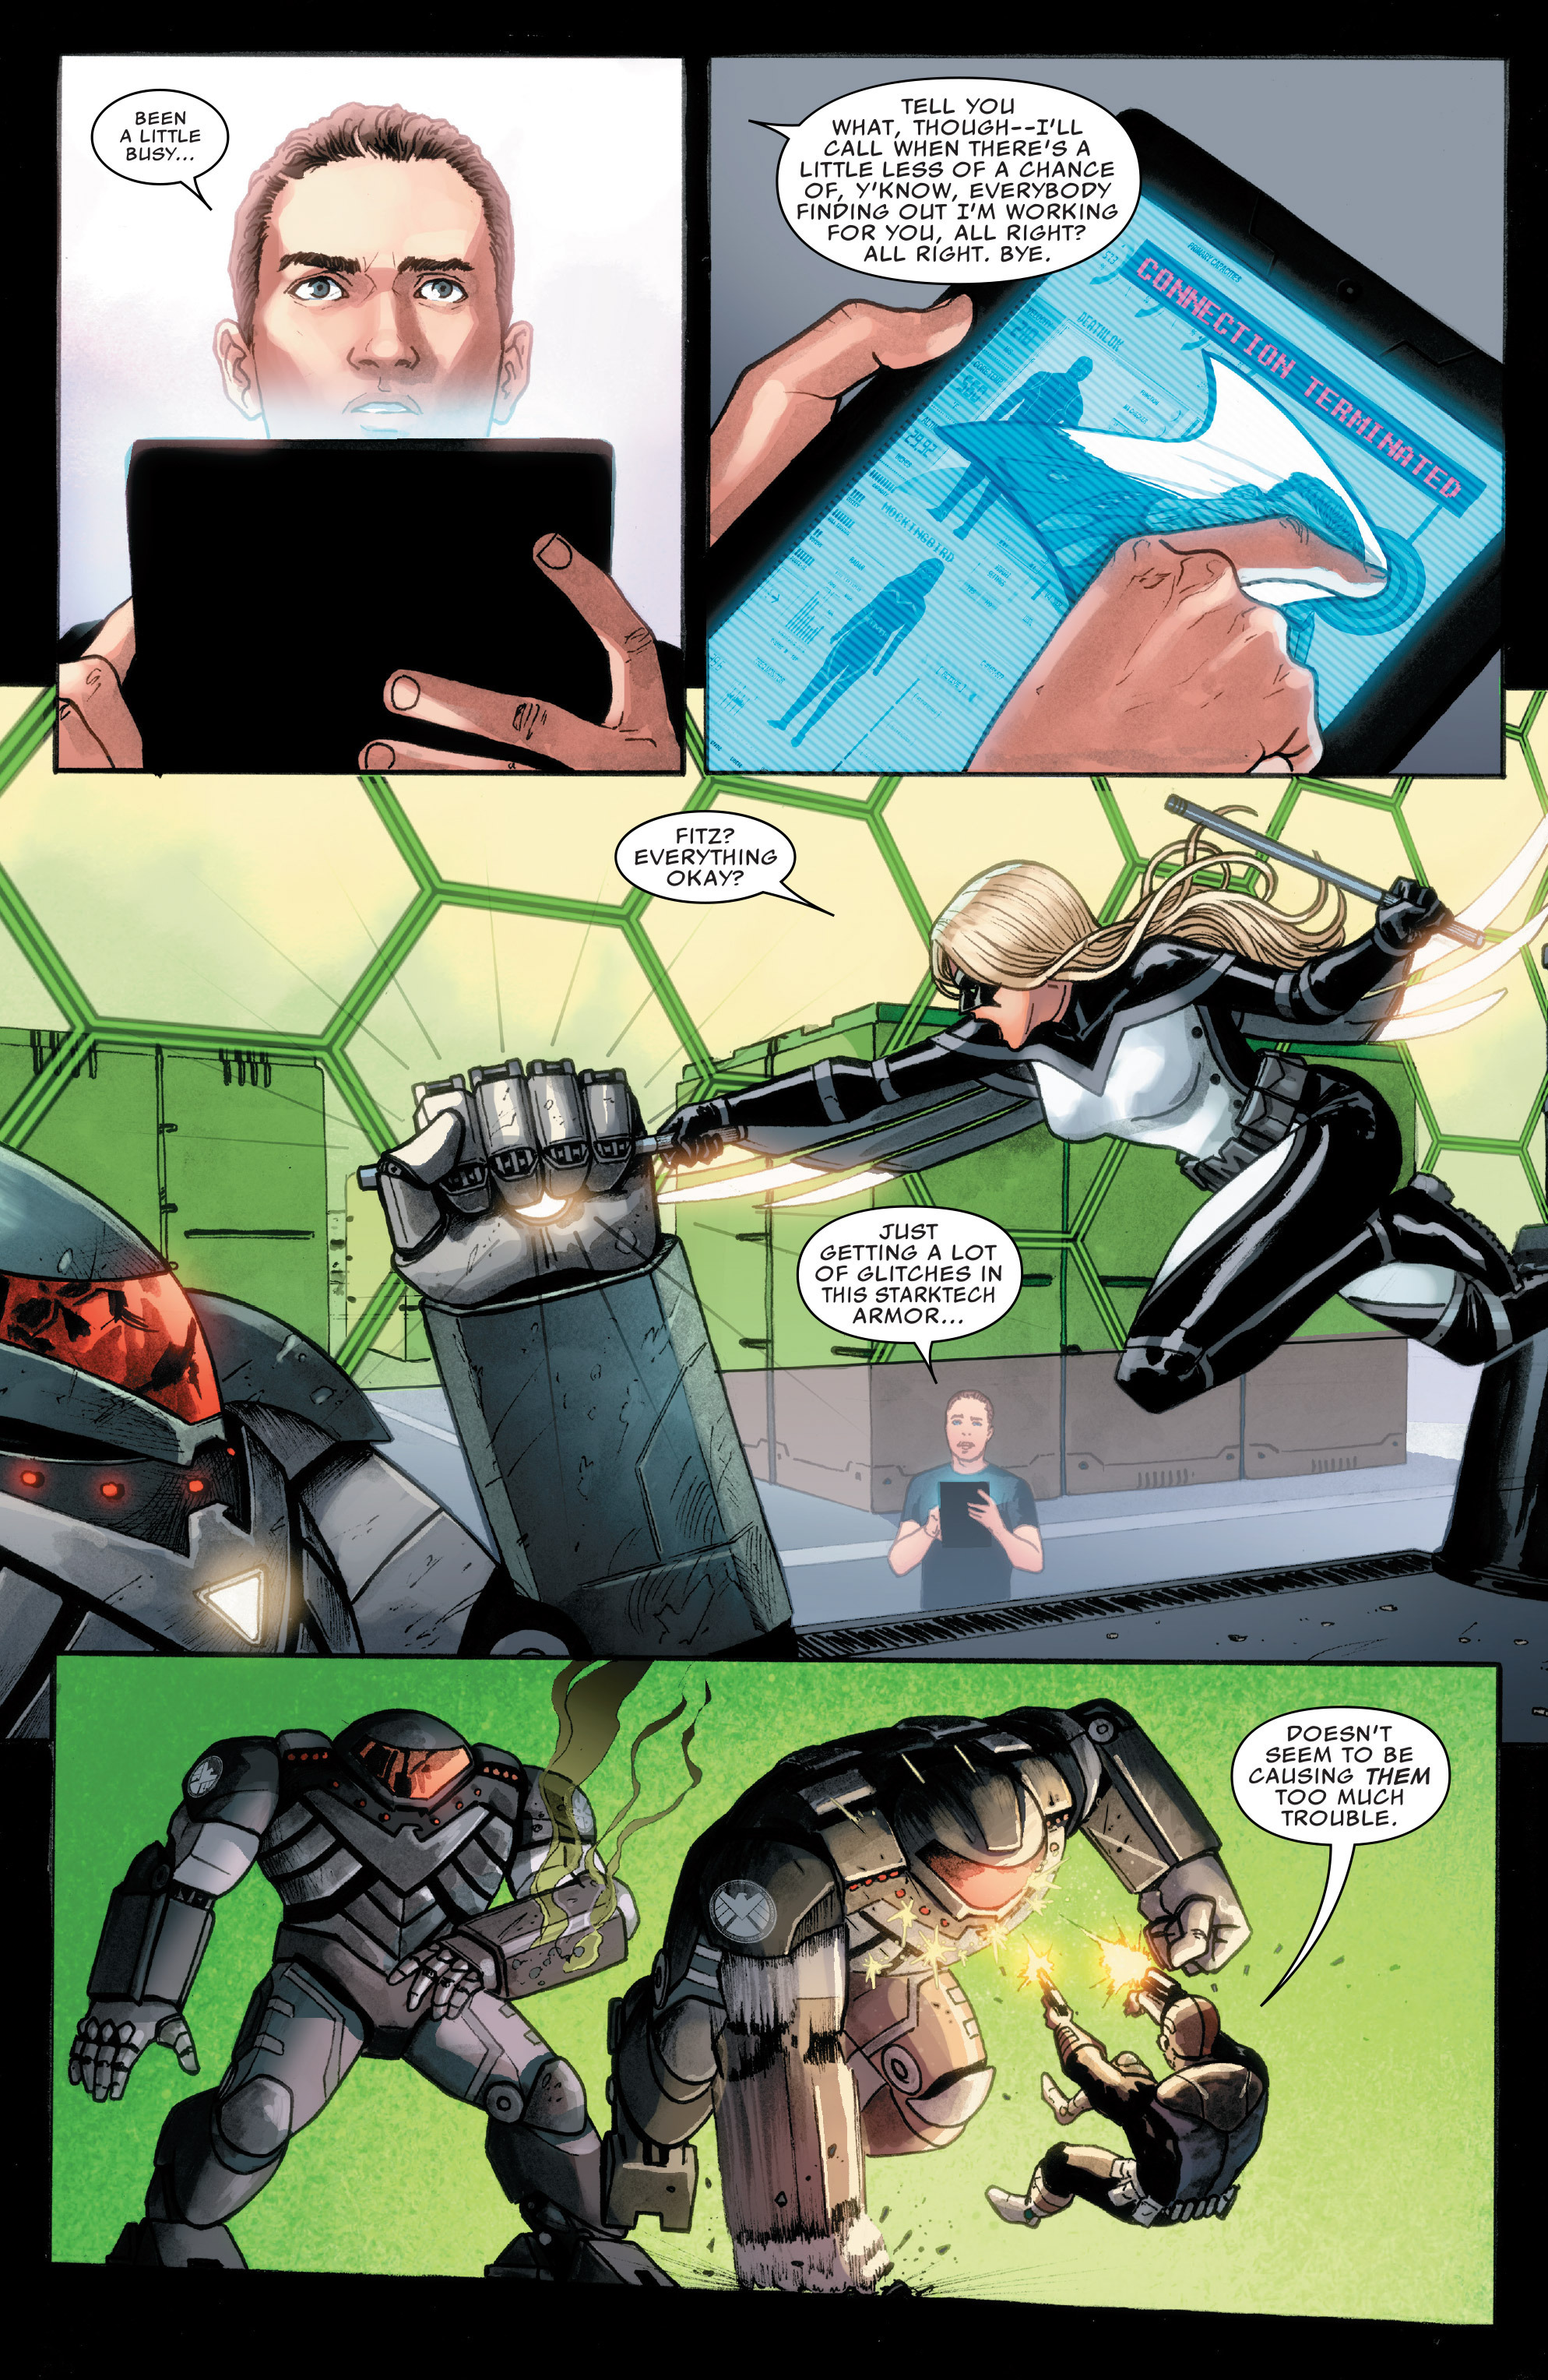 Read online Agents of S.H.I.E.L.D. comic -  Issue #8 - 17